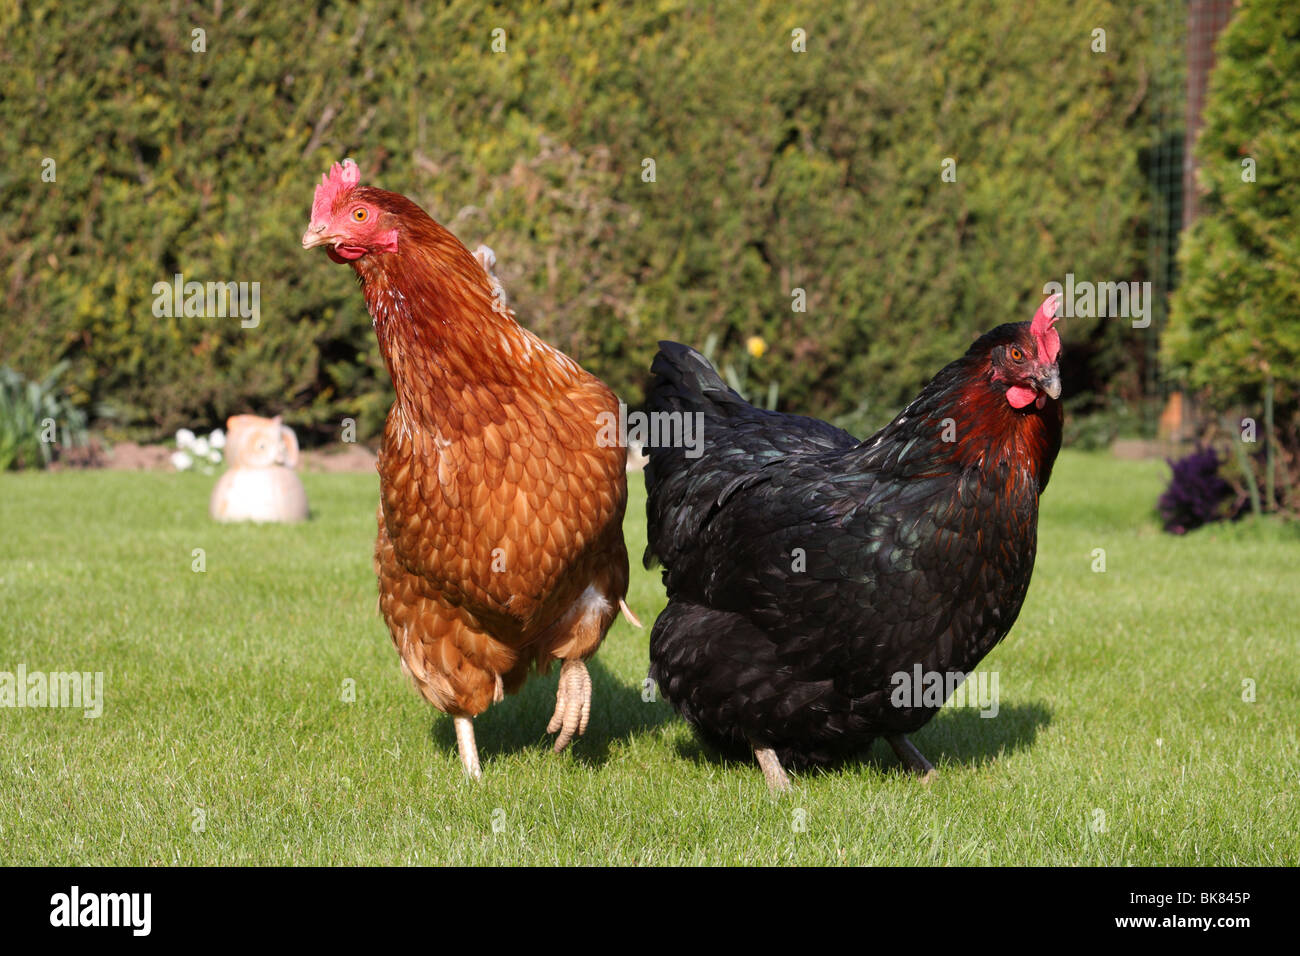 Free-range hens in a garden in the U.K. - Stock Image